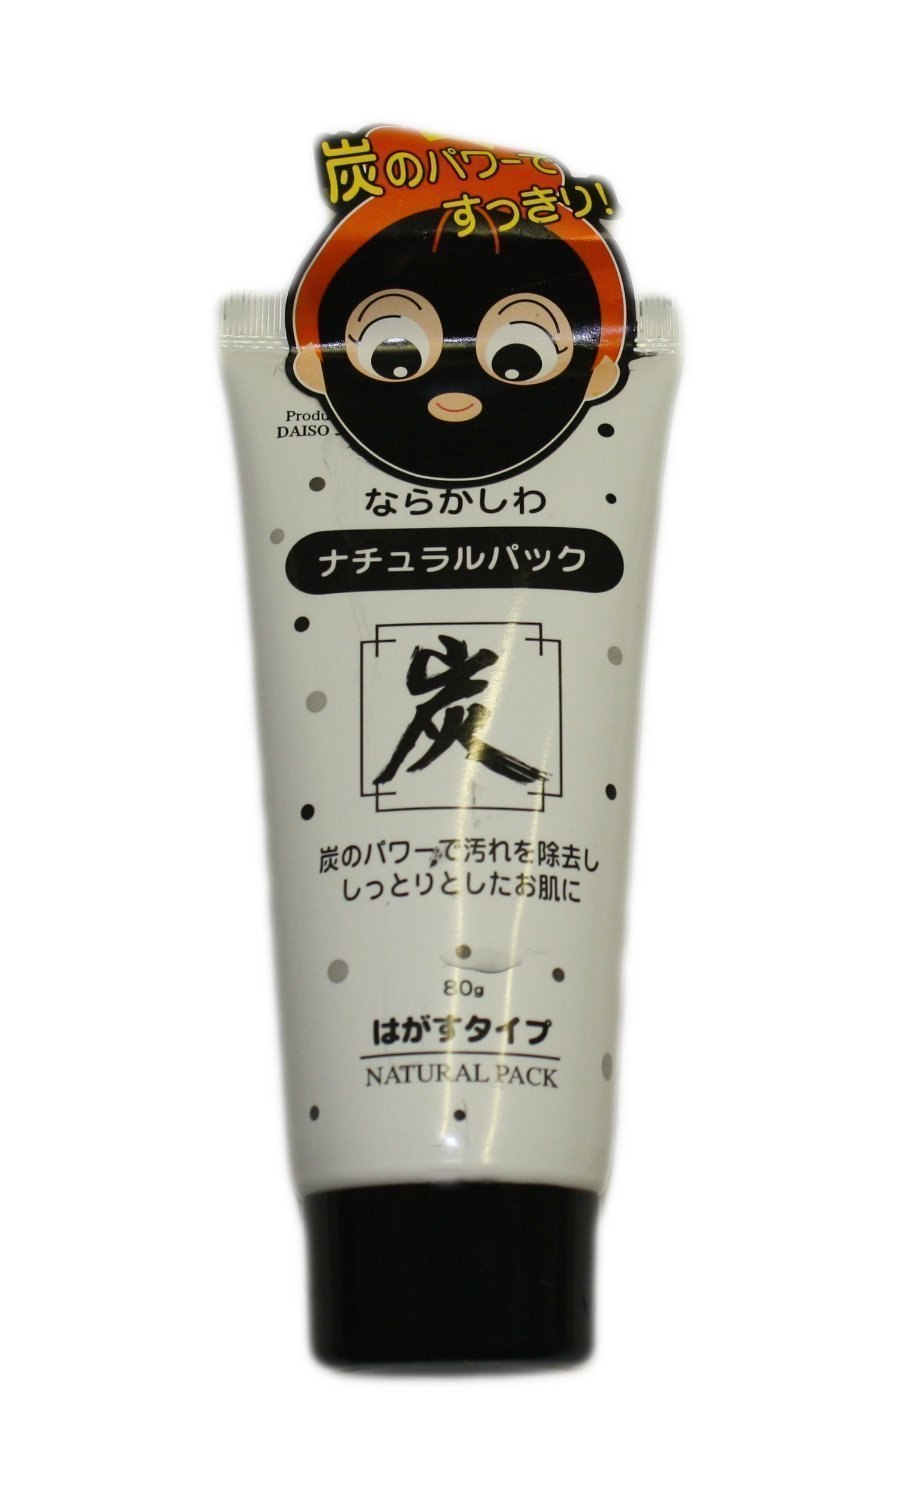 Daiso Japan Natural Pack Charcoal Peel Off Mask, 80 Gram Amazing Innovation DAISO-Charcoal